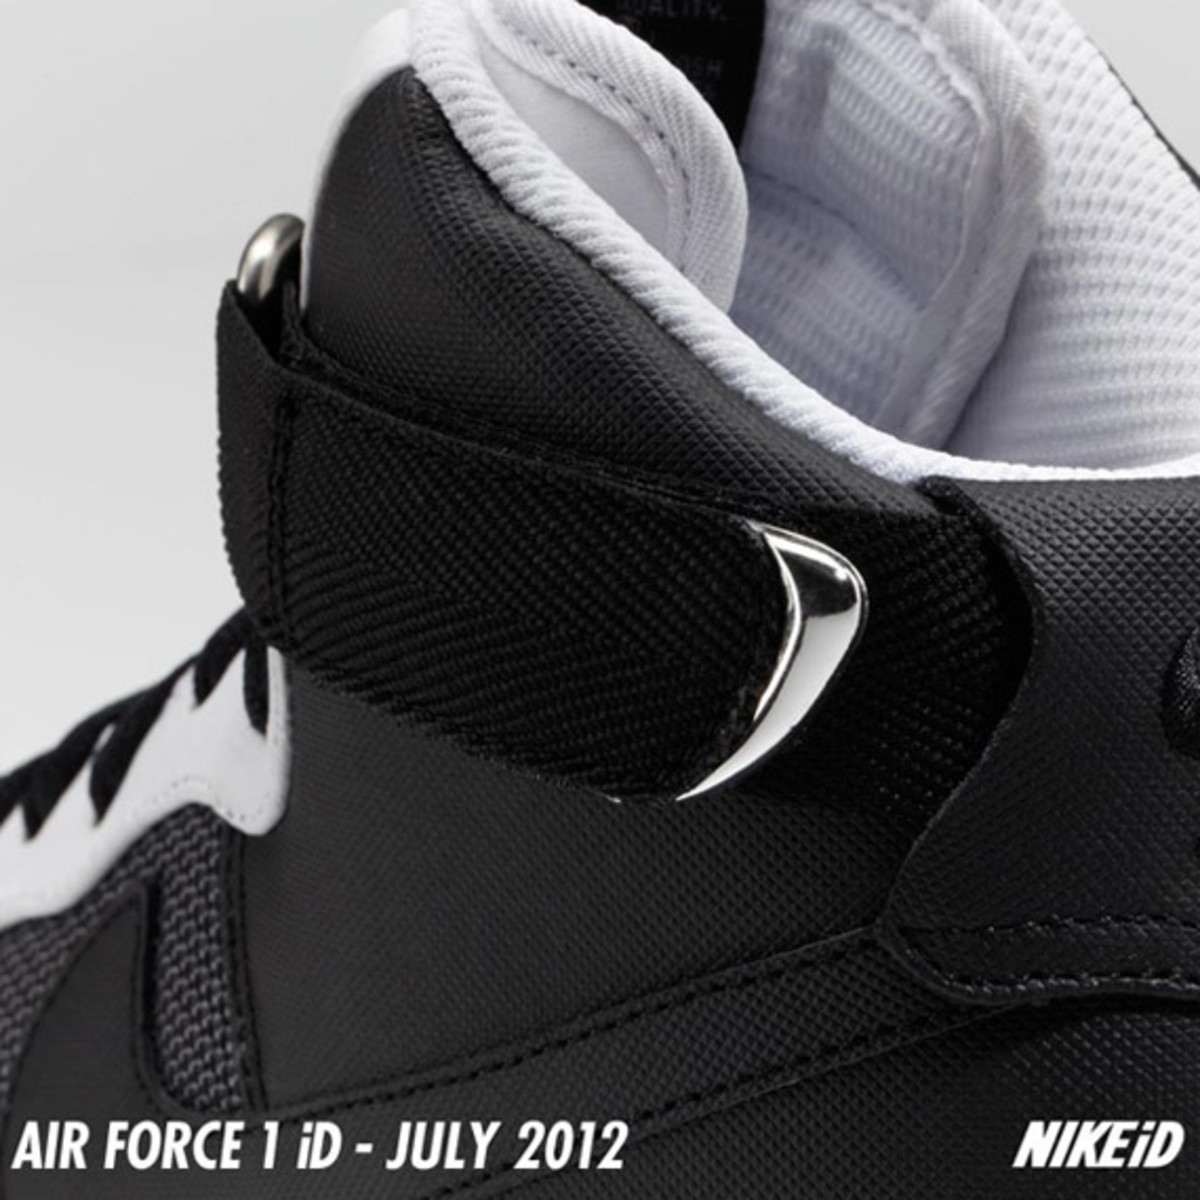 nikeid-air-force-1-id-tactical-mesh-grip-leather-design-july-2012-05